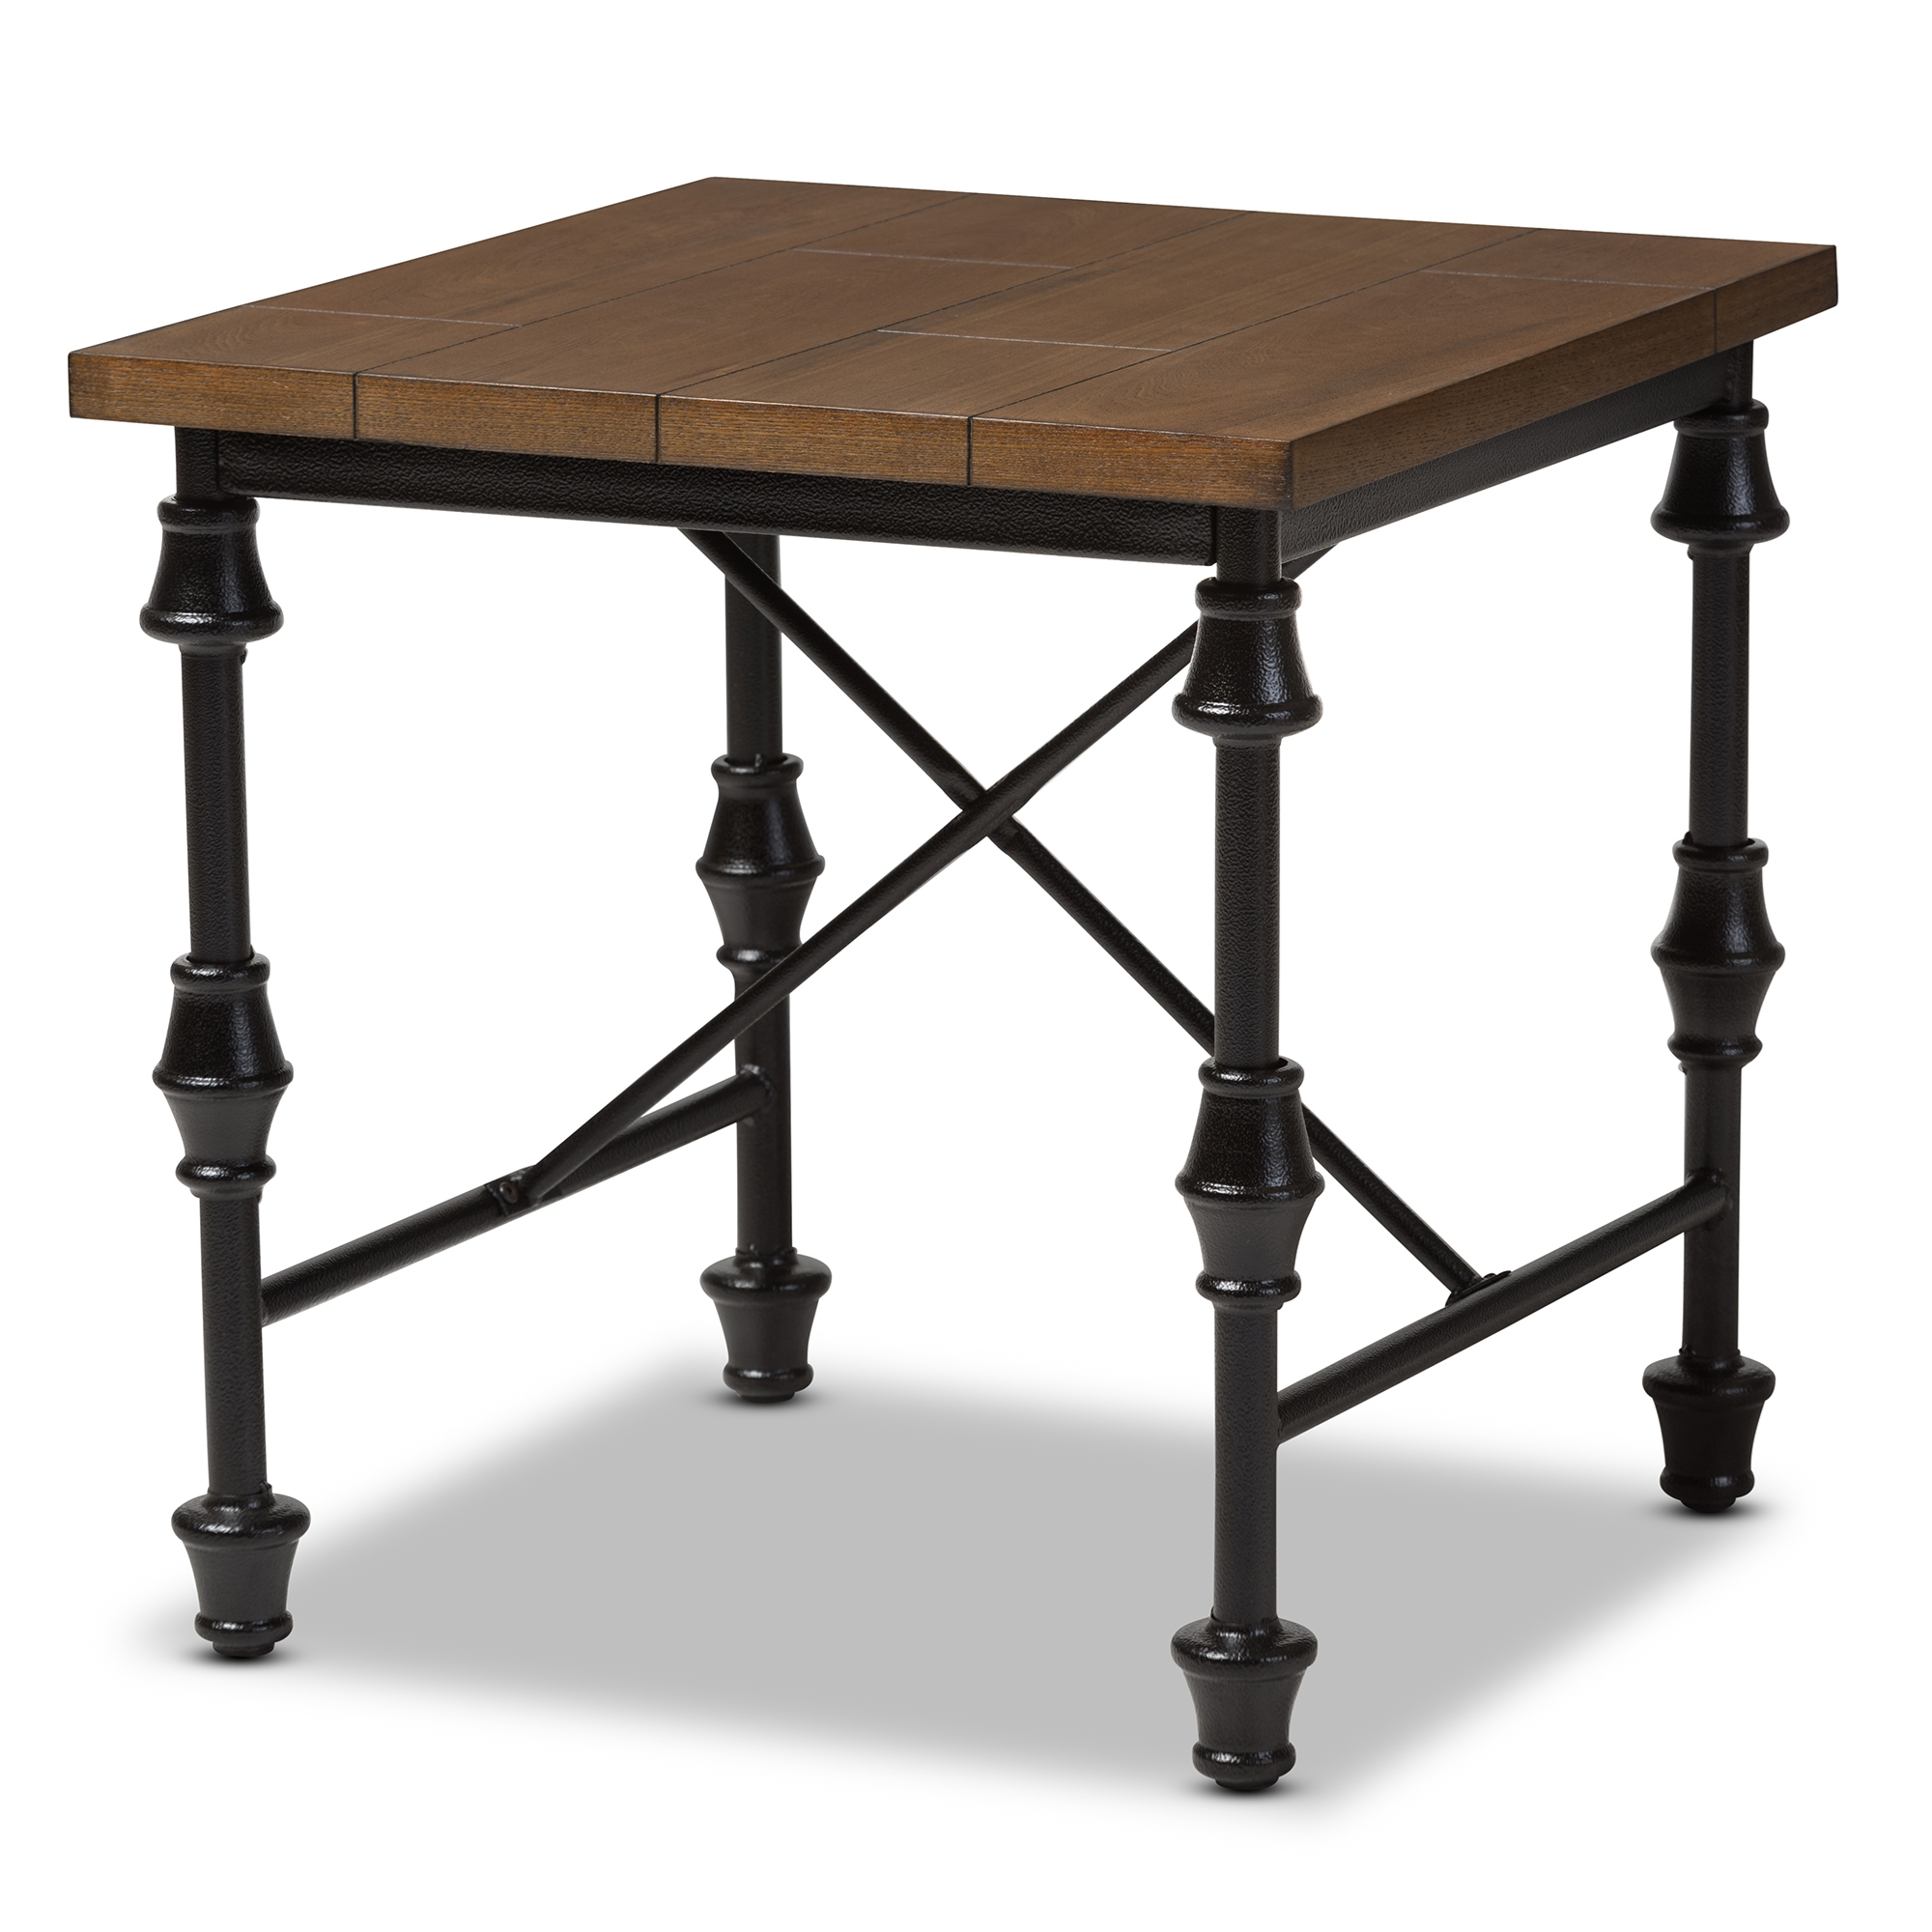 baxton studio julian rustic industrial style antique black textured finished metal distressed wood occasional side table